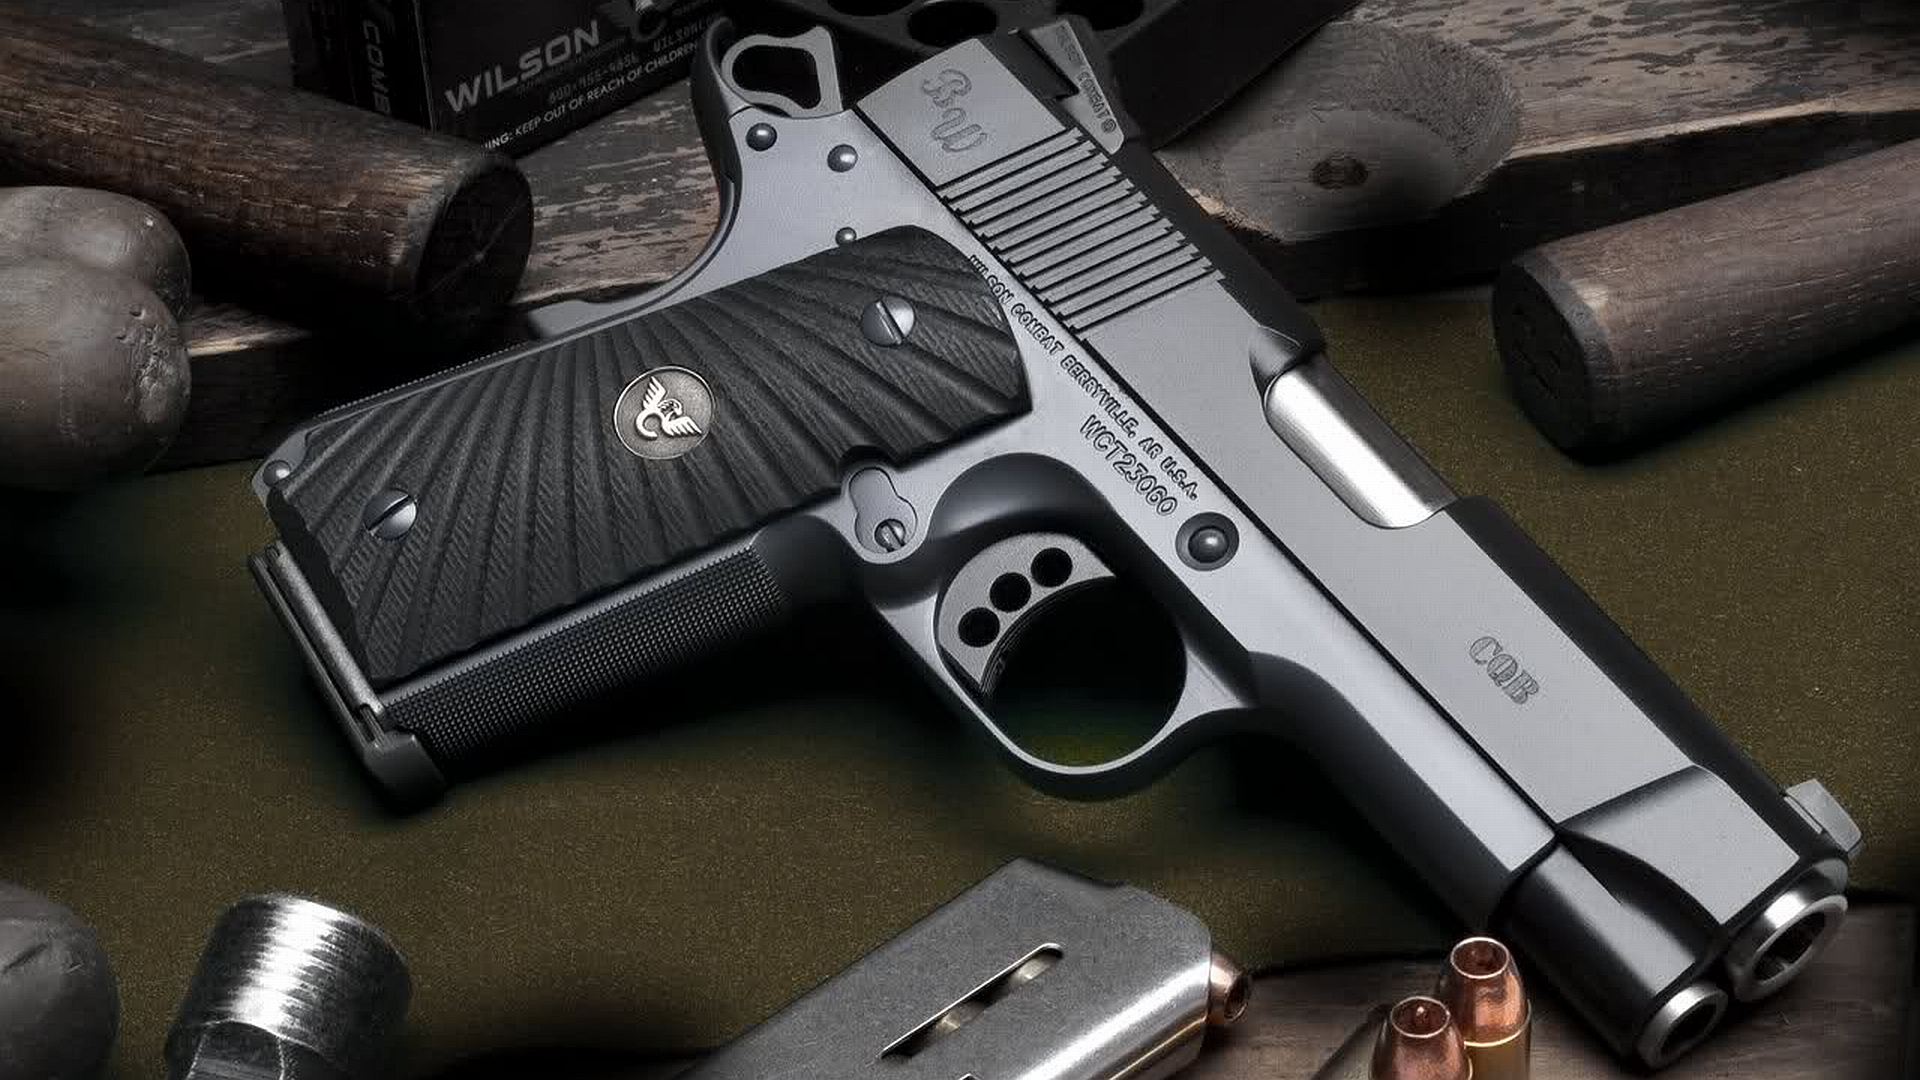 Pistol HD Wallpapers  Backgrounds  Wallpaper  1920x1080